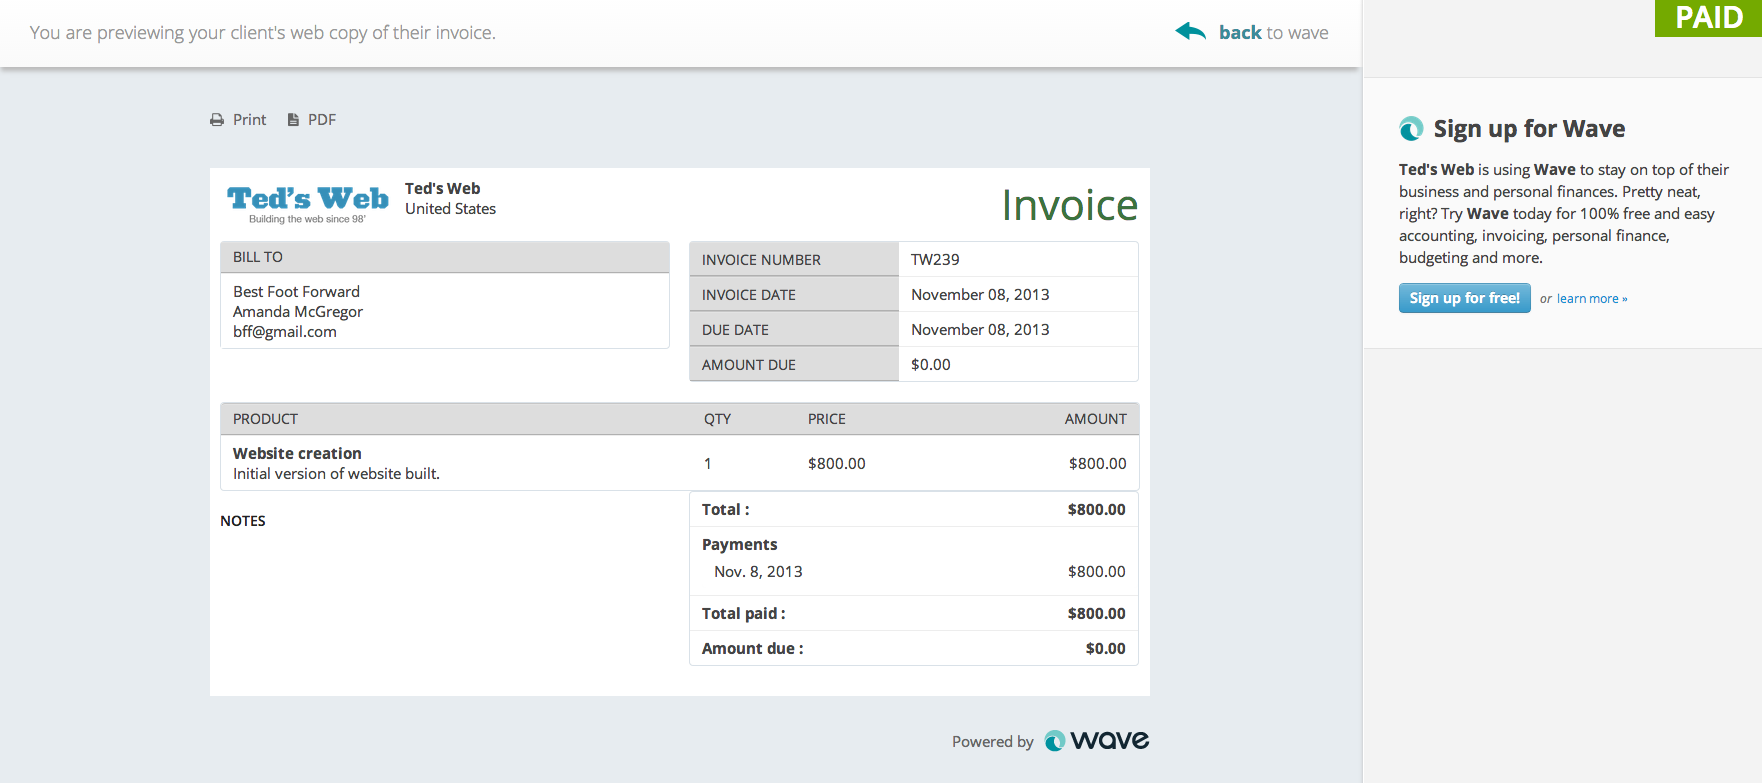 Tax Invoices Template Invoicing By Wave Covers The Full Invoicing Cycle Commercial Invoice Fed Ex Excel with Free Invoice Templates Pdf Excel Before You Send Your Invoice Proventure Invoices Pdf